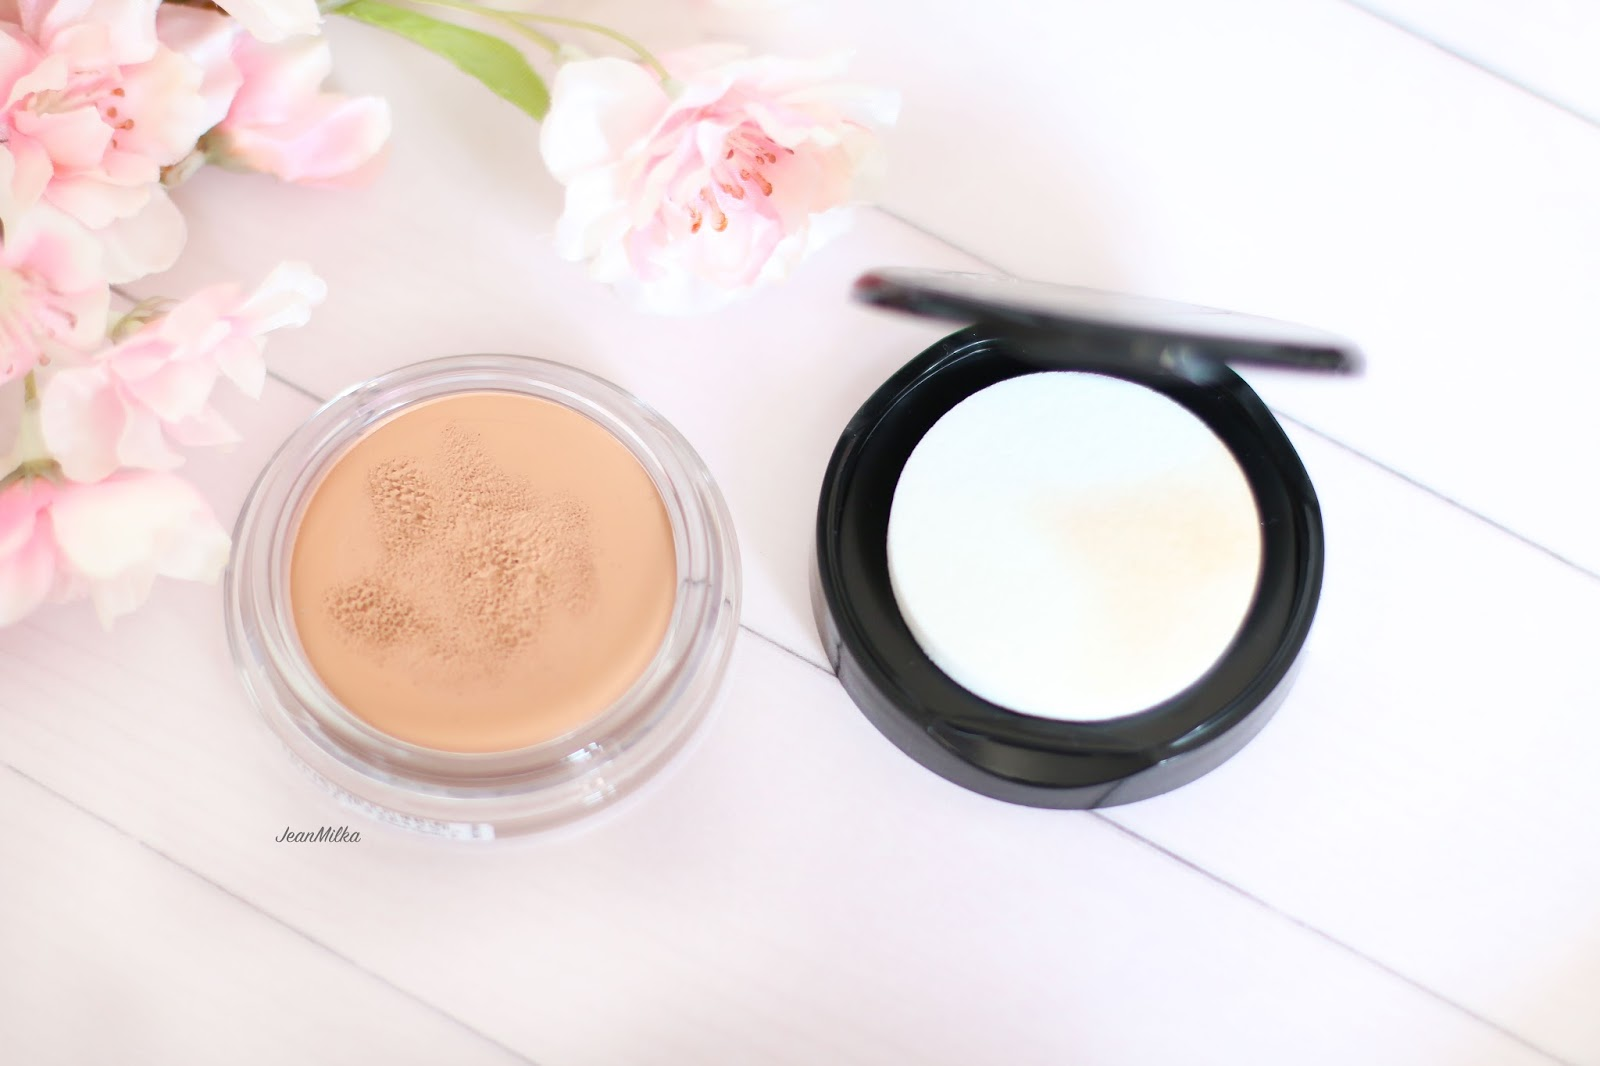 review, product review, max factor, miracle touch skin smoothing foundation, foundation, drugstore, makeup